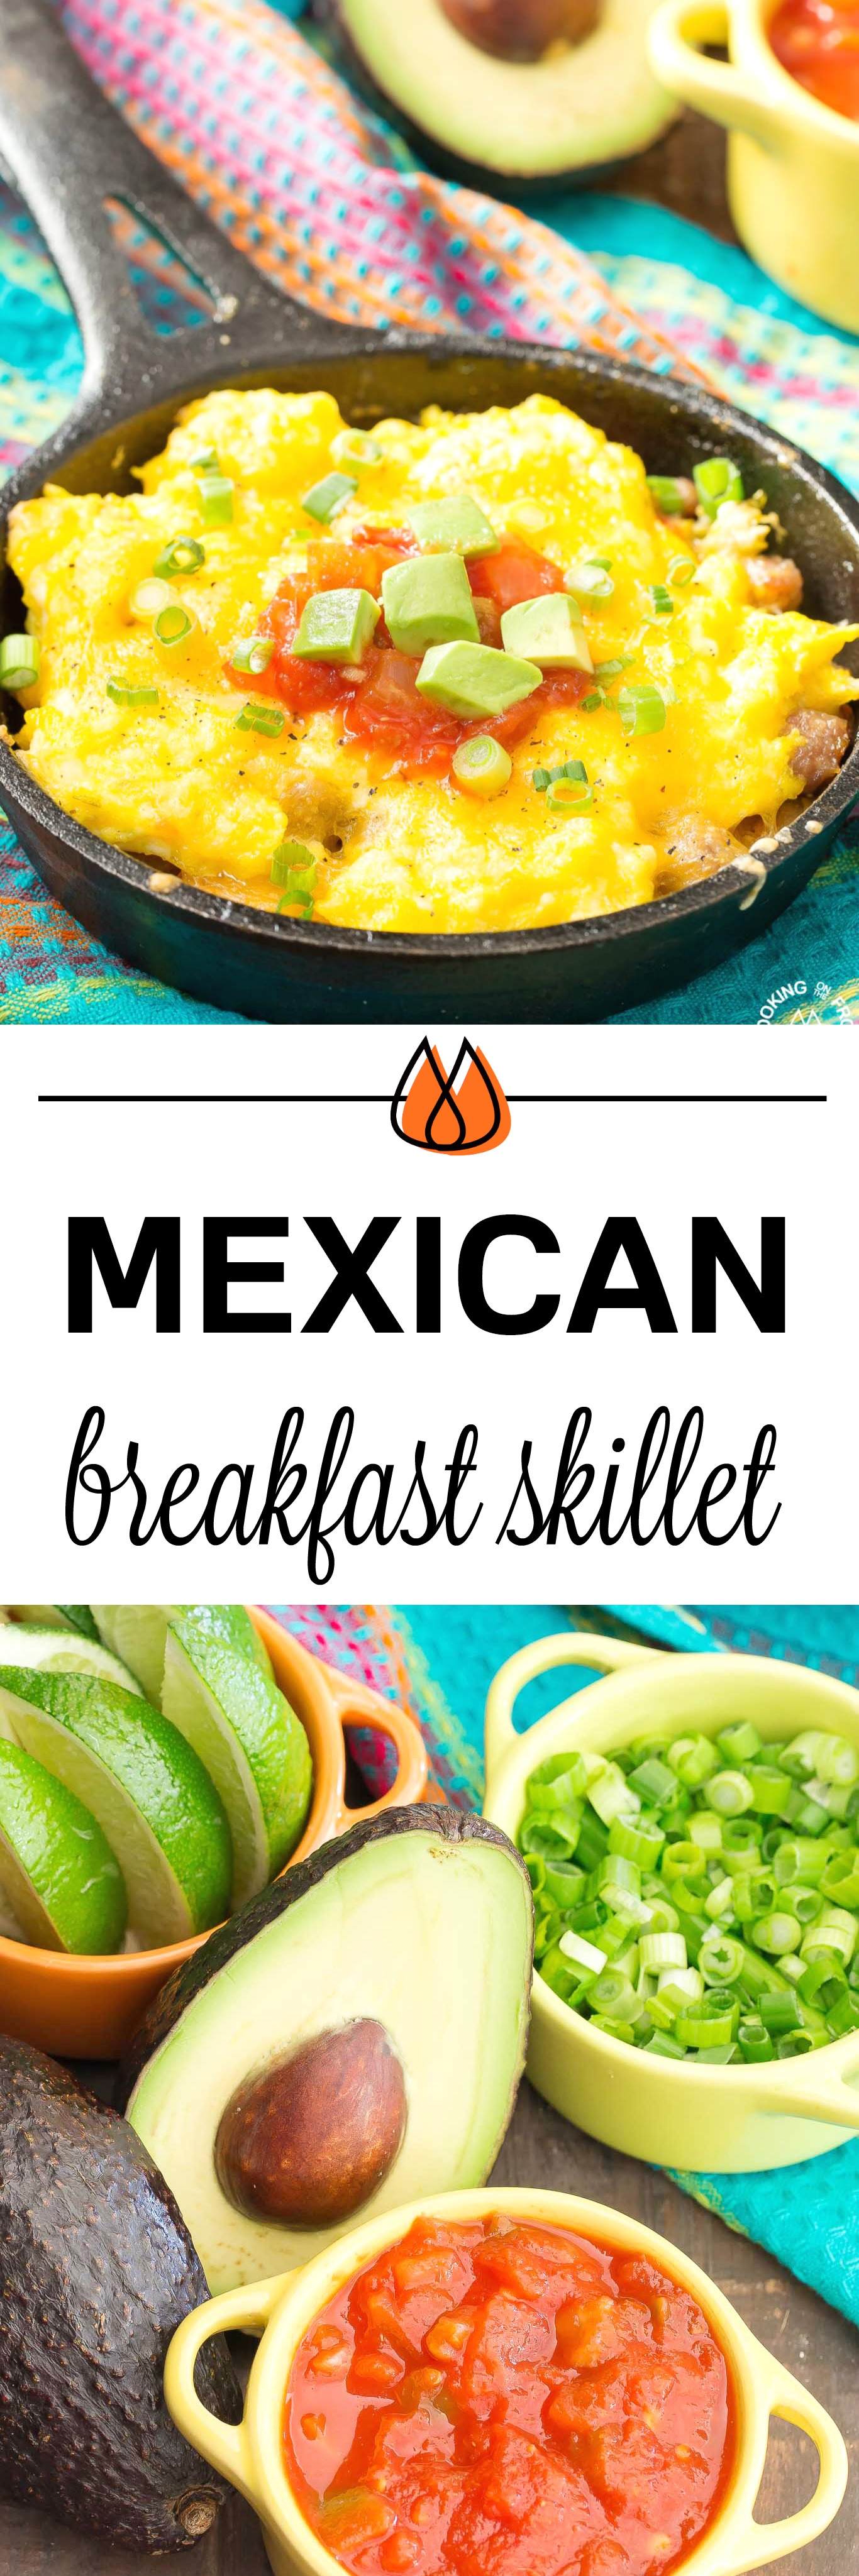 You will love waking up to this Mexican Breakfast Skillet Pizza that will be your favorite meal of the day! The skillet is lined with crispy tator tots, lots of gooey cheese, sausage, eggs, green chilies and great toppings. #mexican #skillet #breakfastpizza